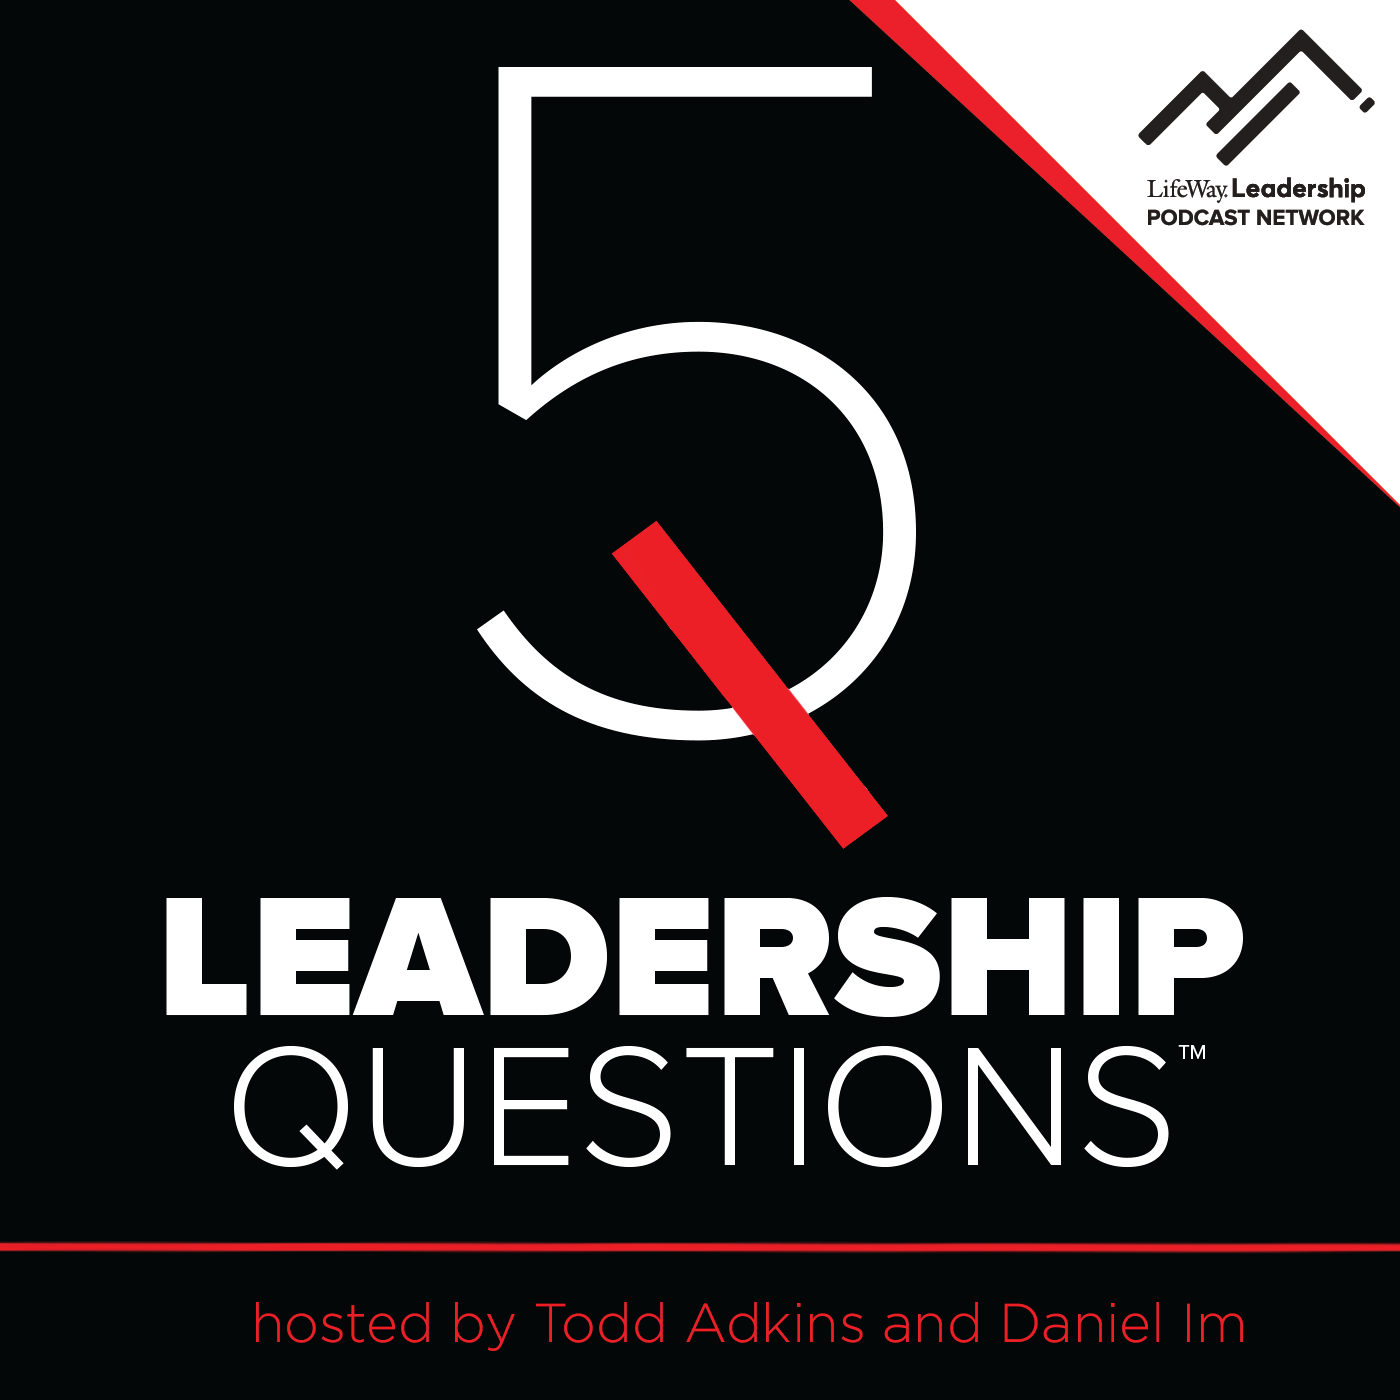 5 Leadership Questions Podcast with Todd Adkins and Daniel Im